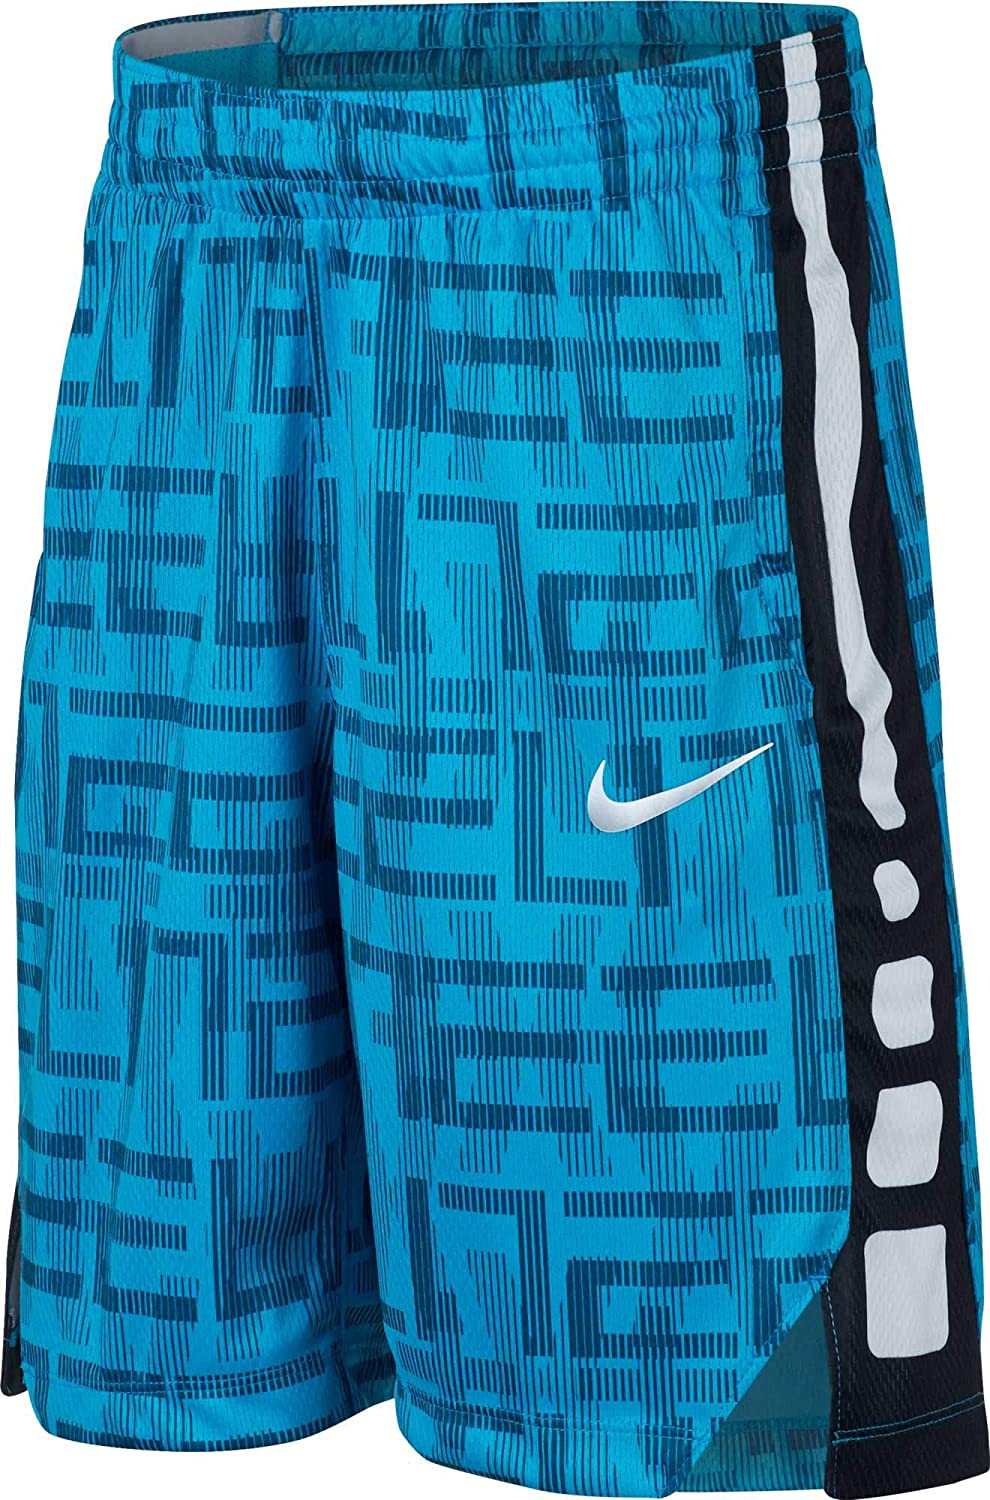 NIKE SHORTS ボーイズ X-Small  B072N4W7KY